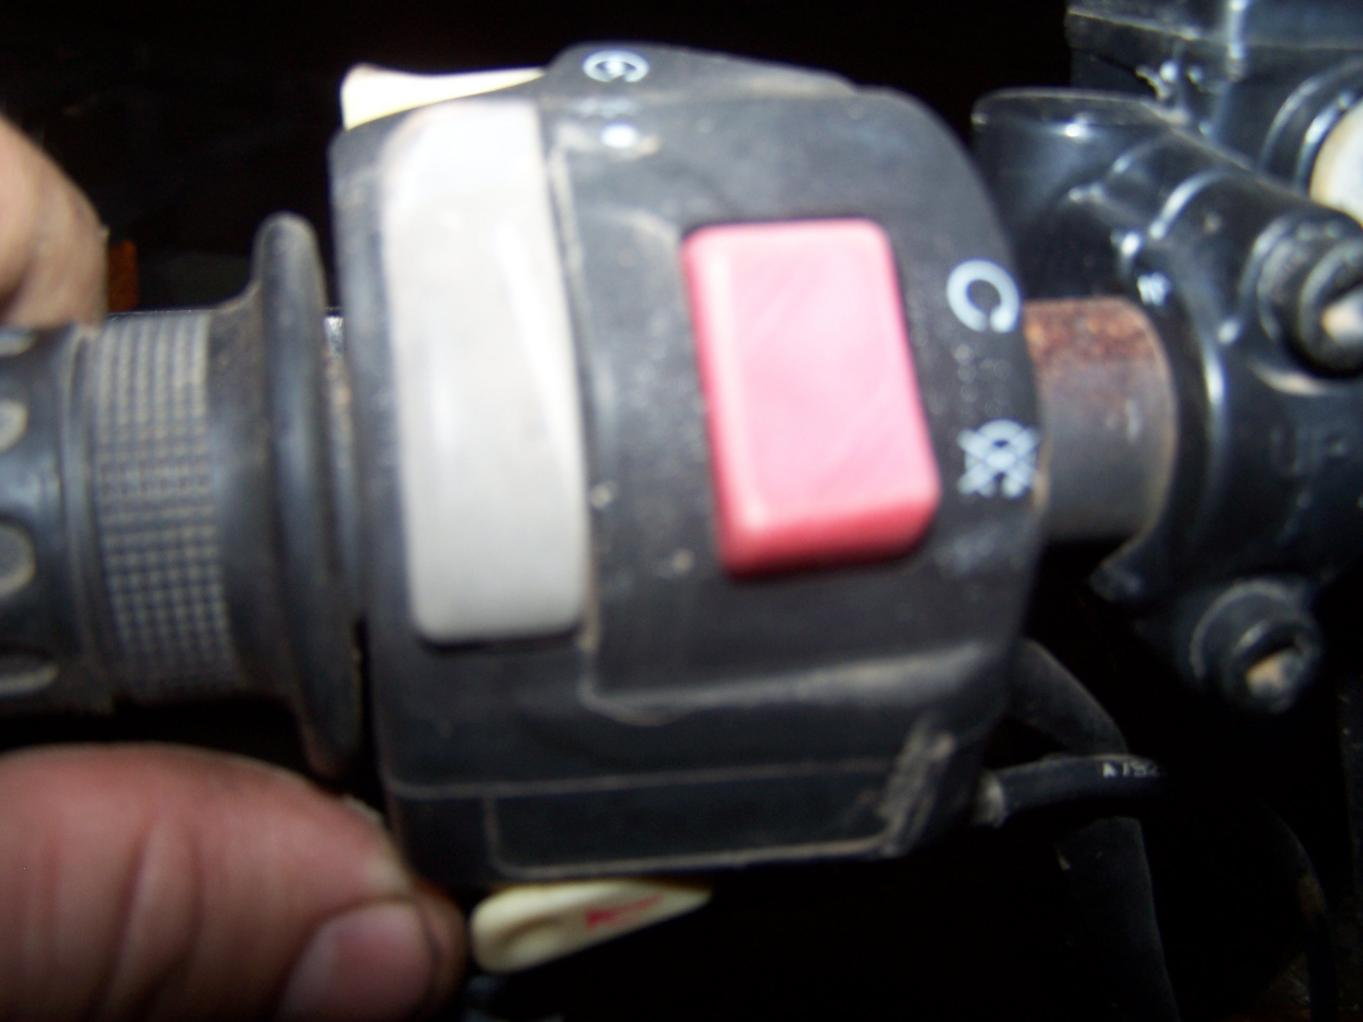 Remote Starter Solenoid Often Referred To As The Starter Relay